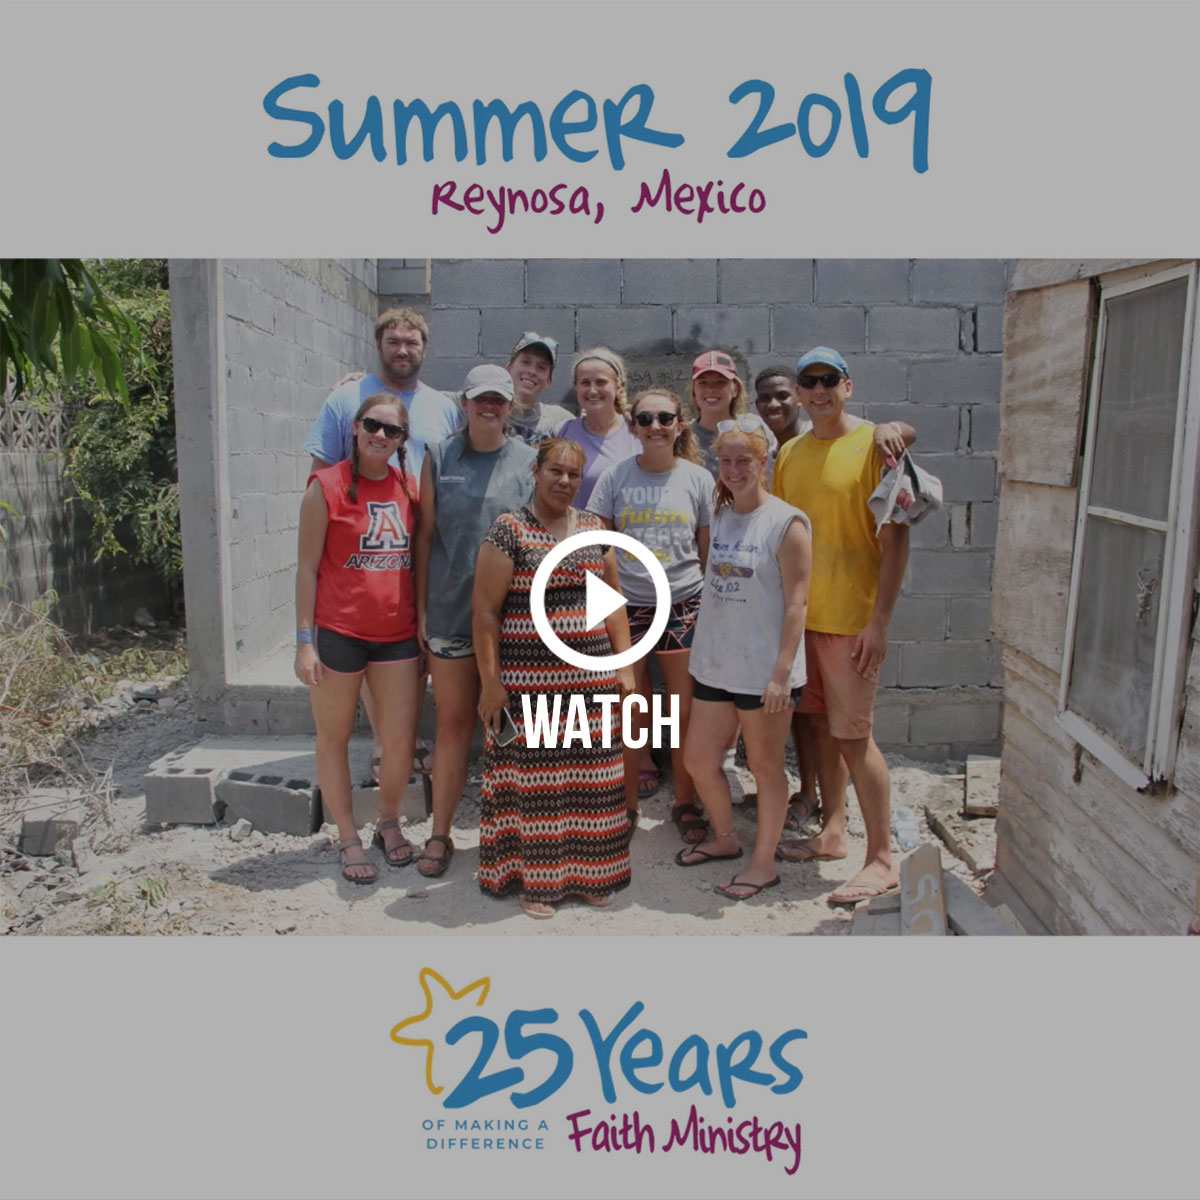 Click to watch a photo recap of our summer 2019